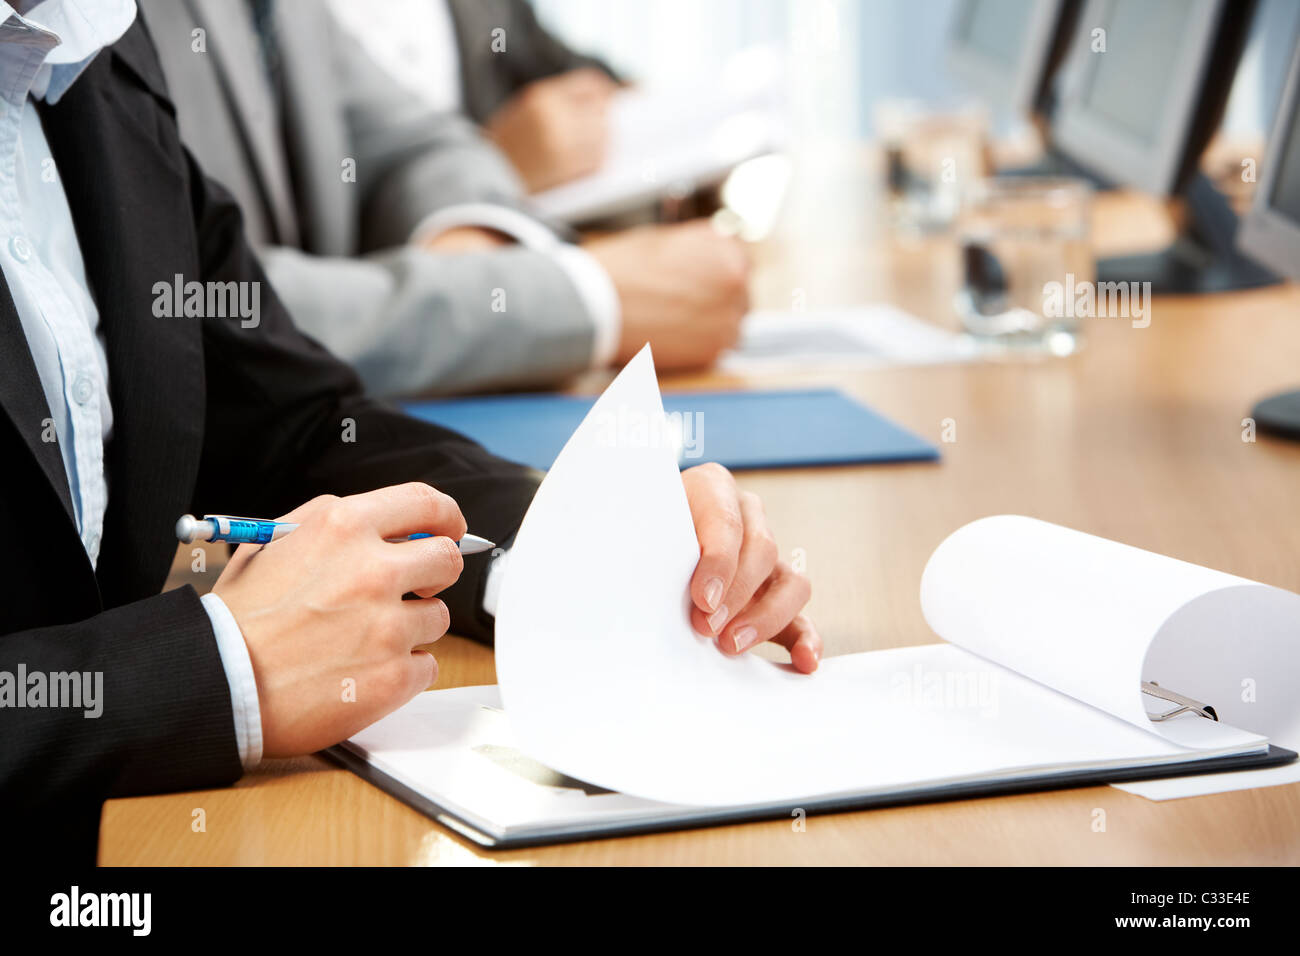 Image of human hand holding pen and making notes at conference - Stock Image